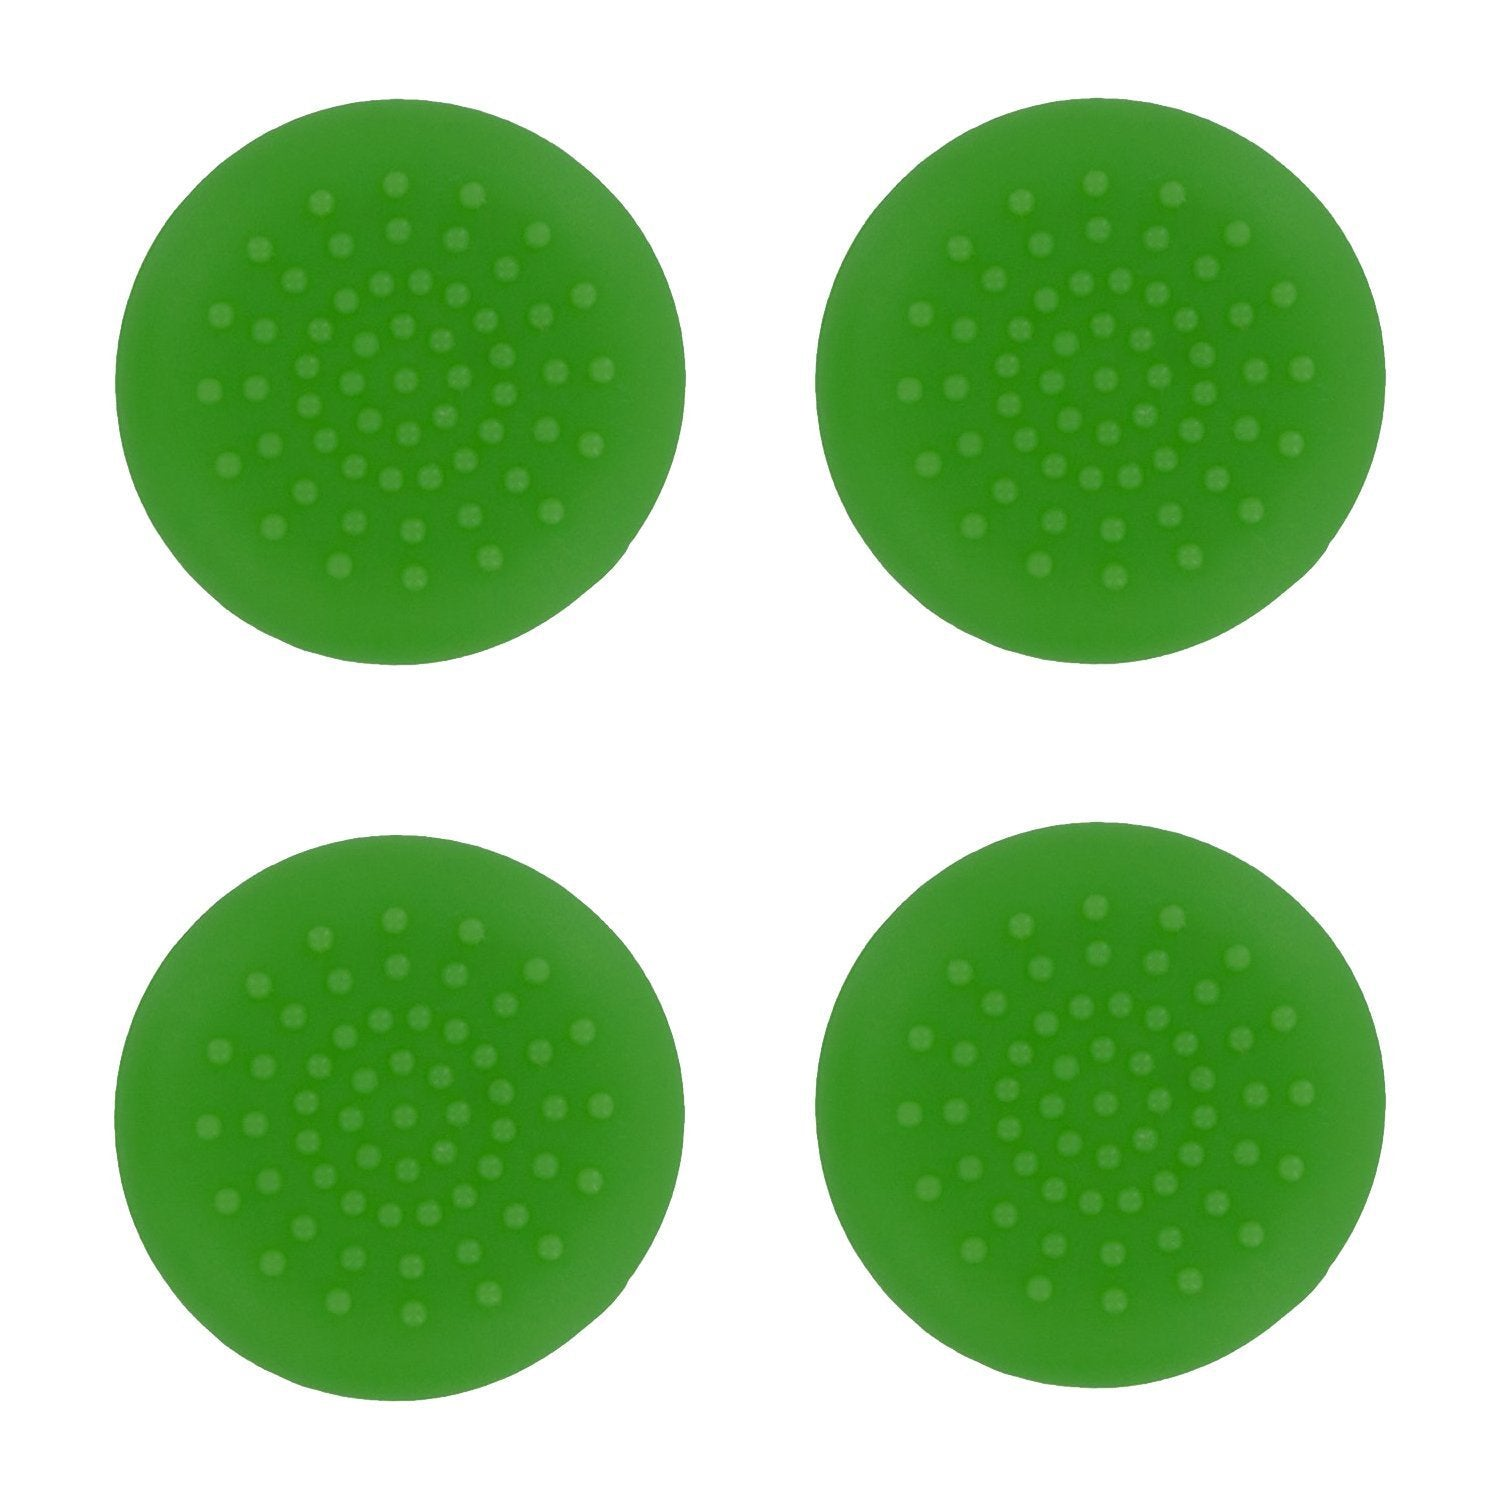 PS4 TPU Thumb Grips - Green - PS4